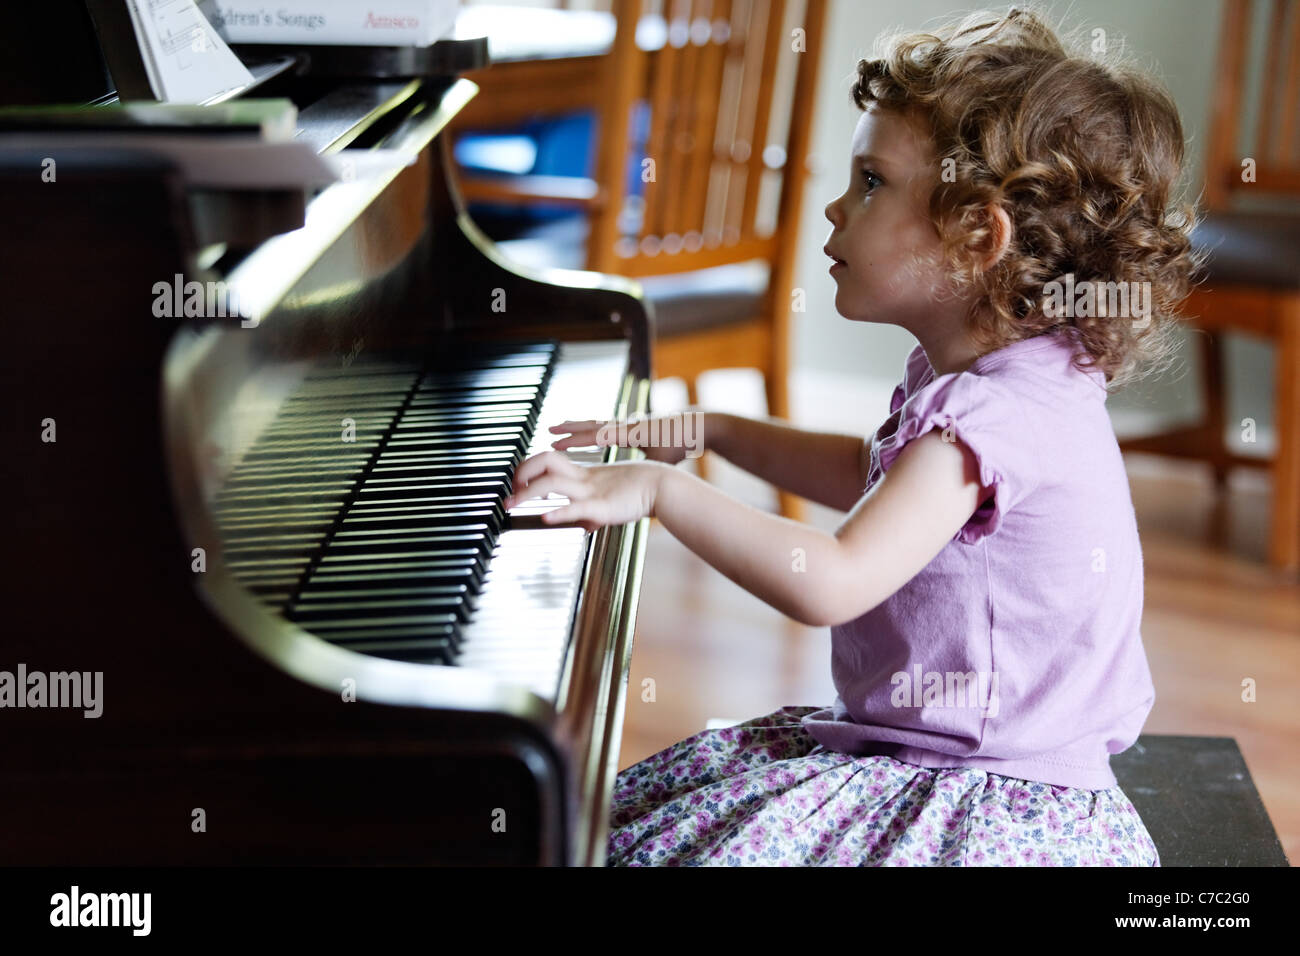 nudist-little-girl-playing-piano